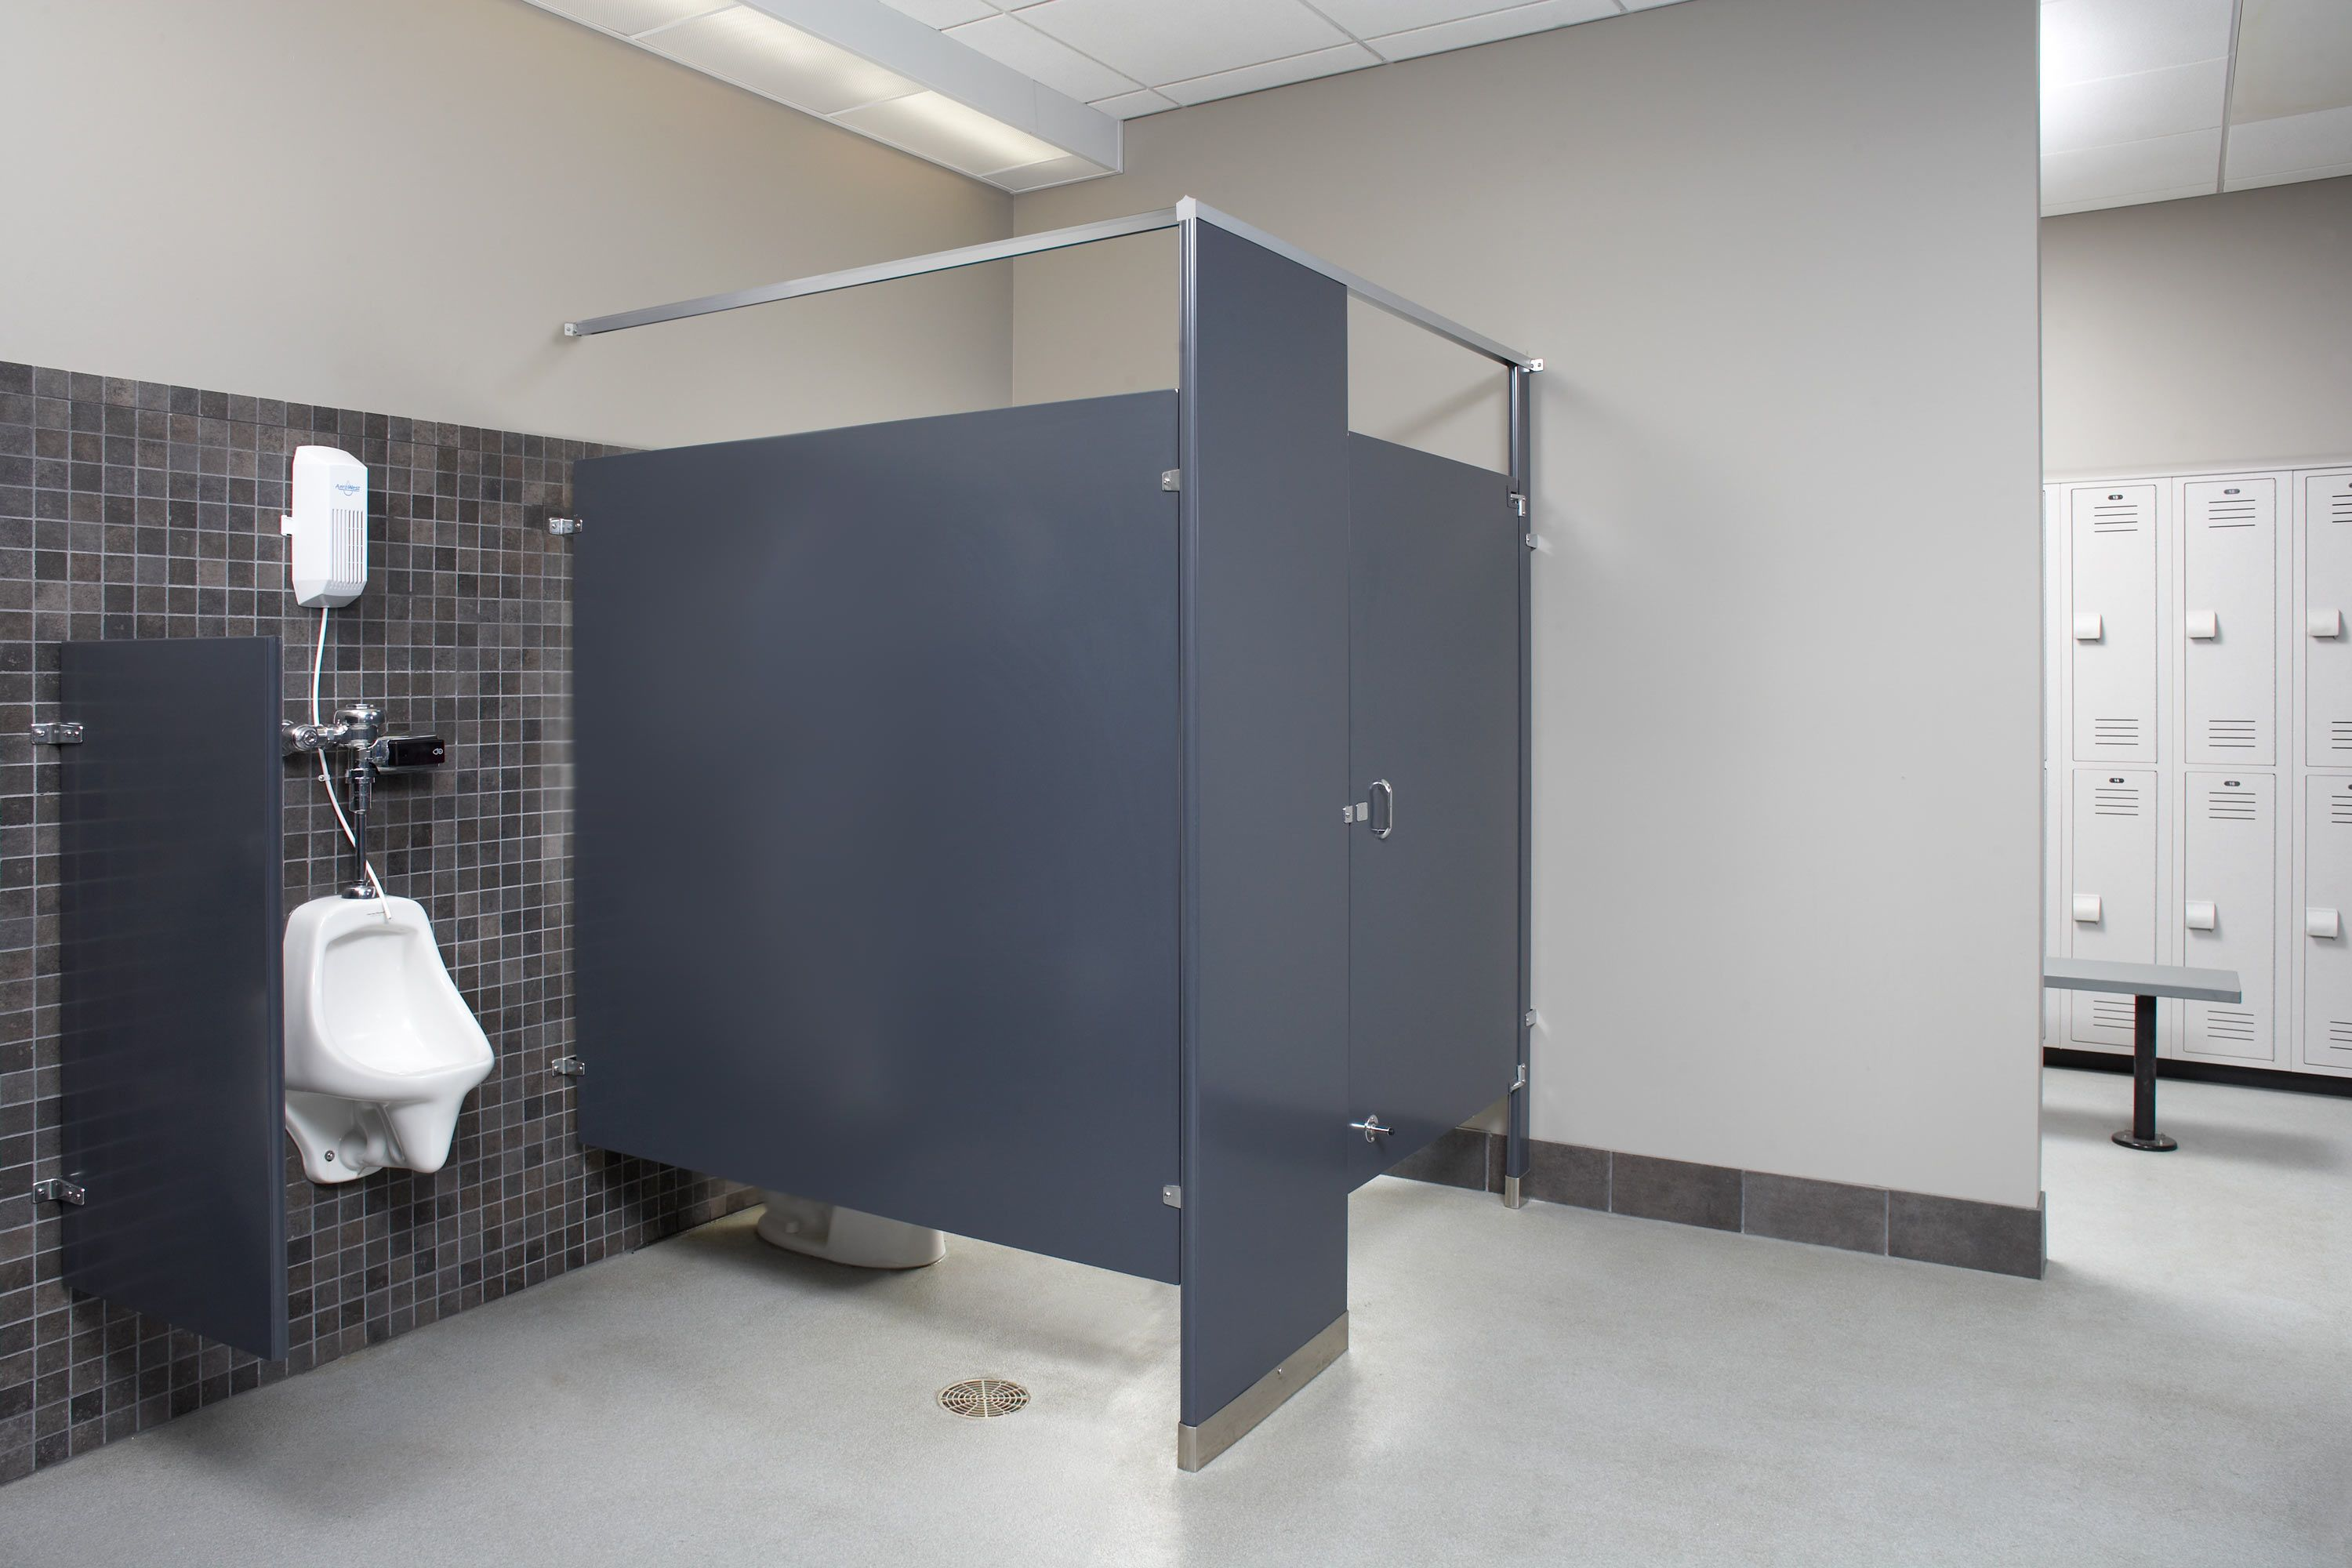 ada shower stall revit | Design | Pinterest | Handicap shower stalls ...